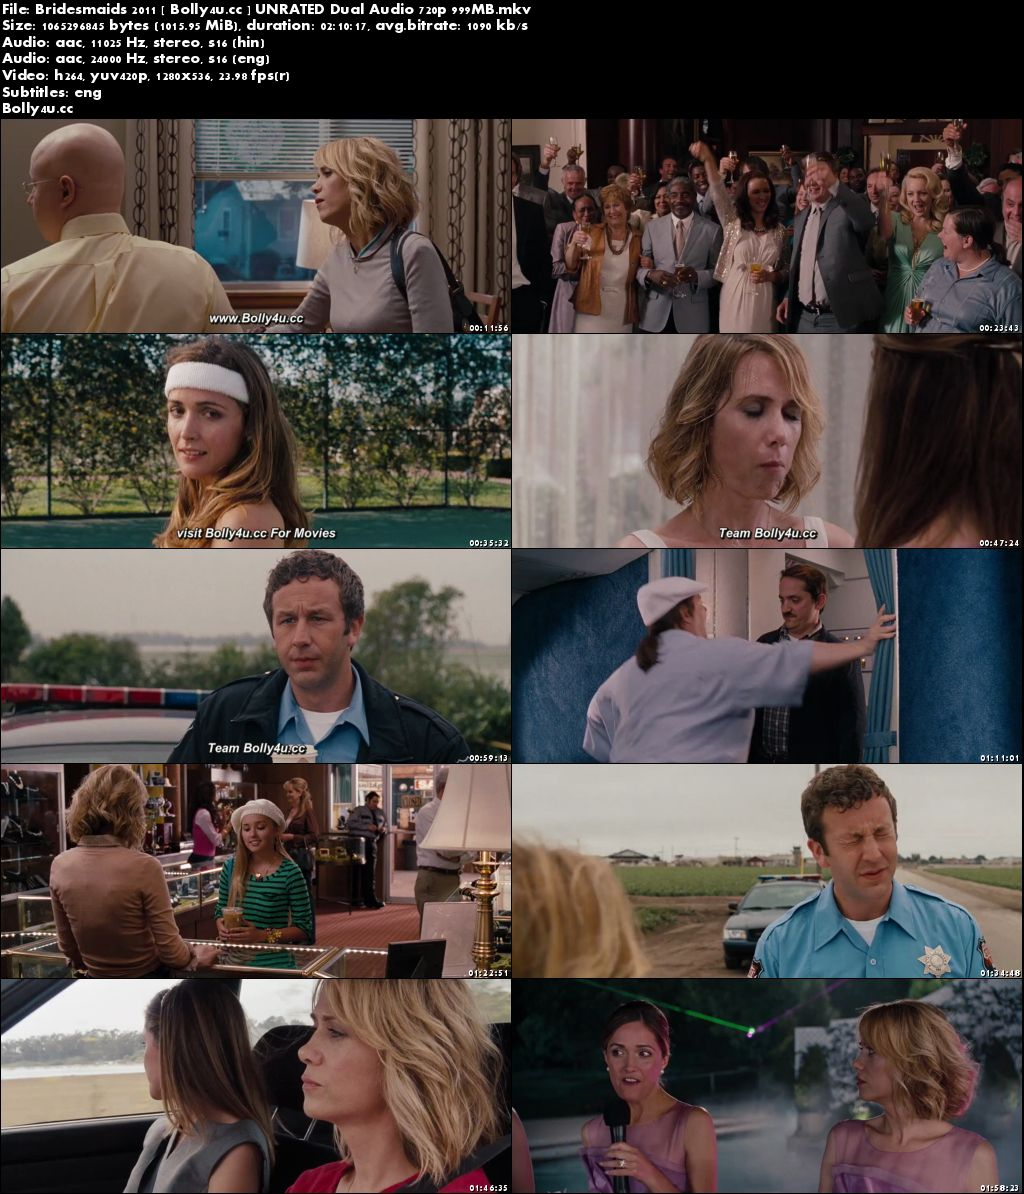 Bridesmaids 2011 BluRay 999Mb Hindi UNRATED Dual Audio 720p Download